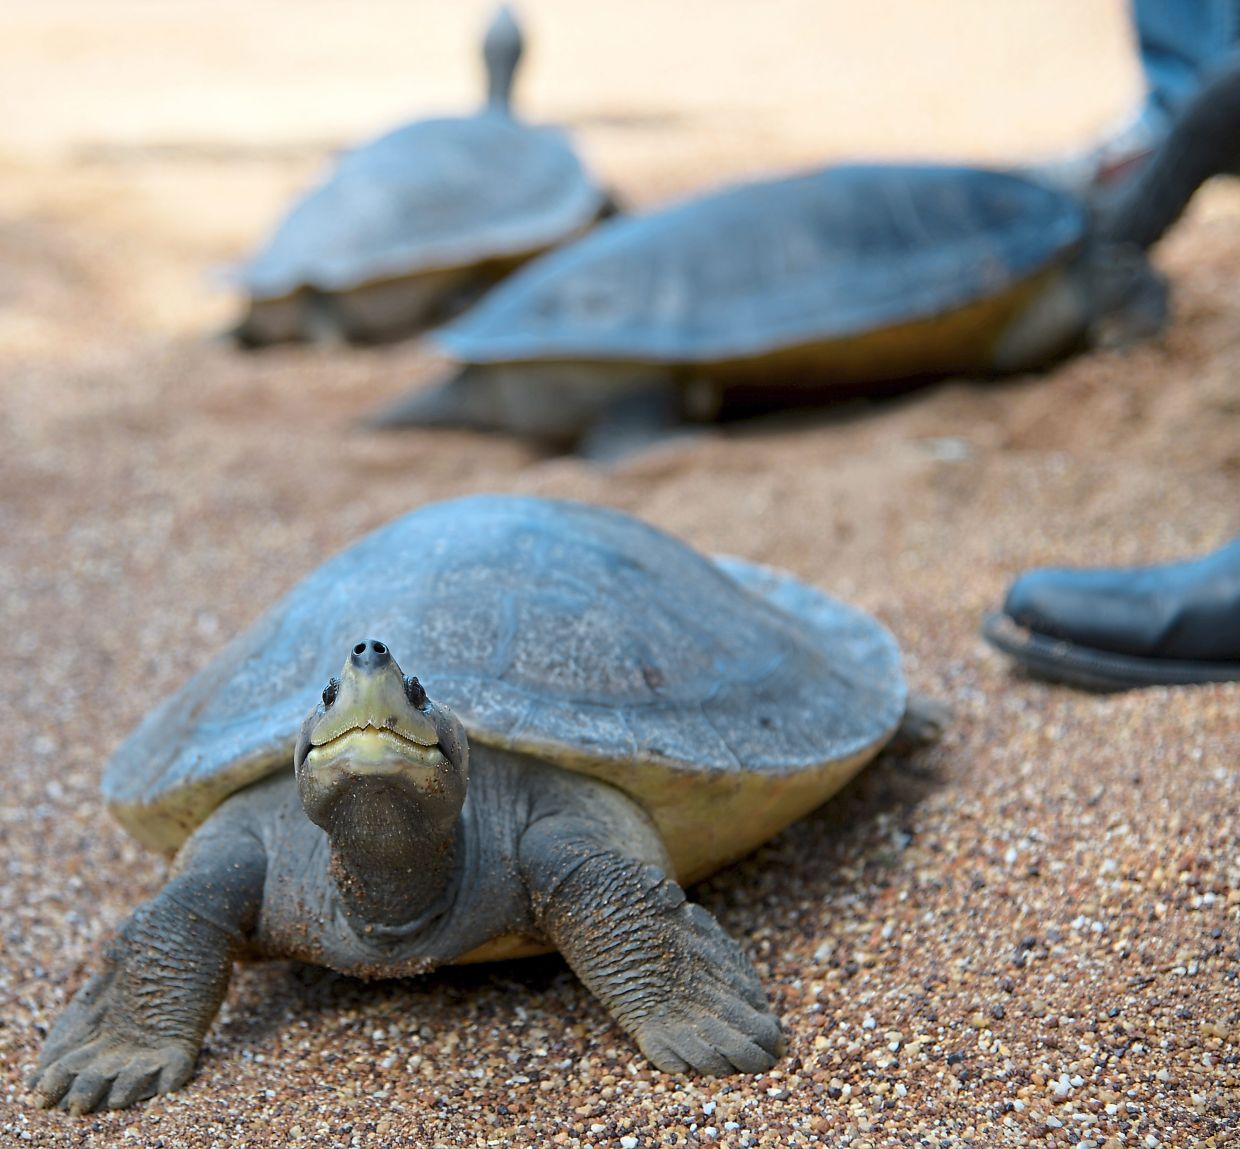 Depending on how old you are, your terrapin or turtle might outlive you as these creatures can live very long!